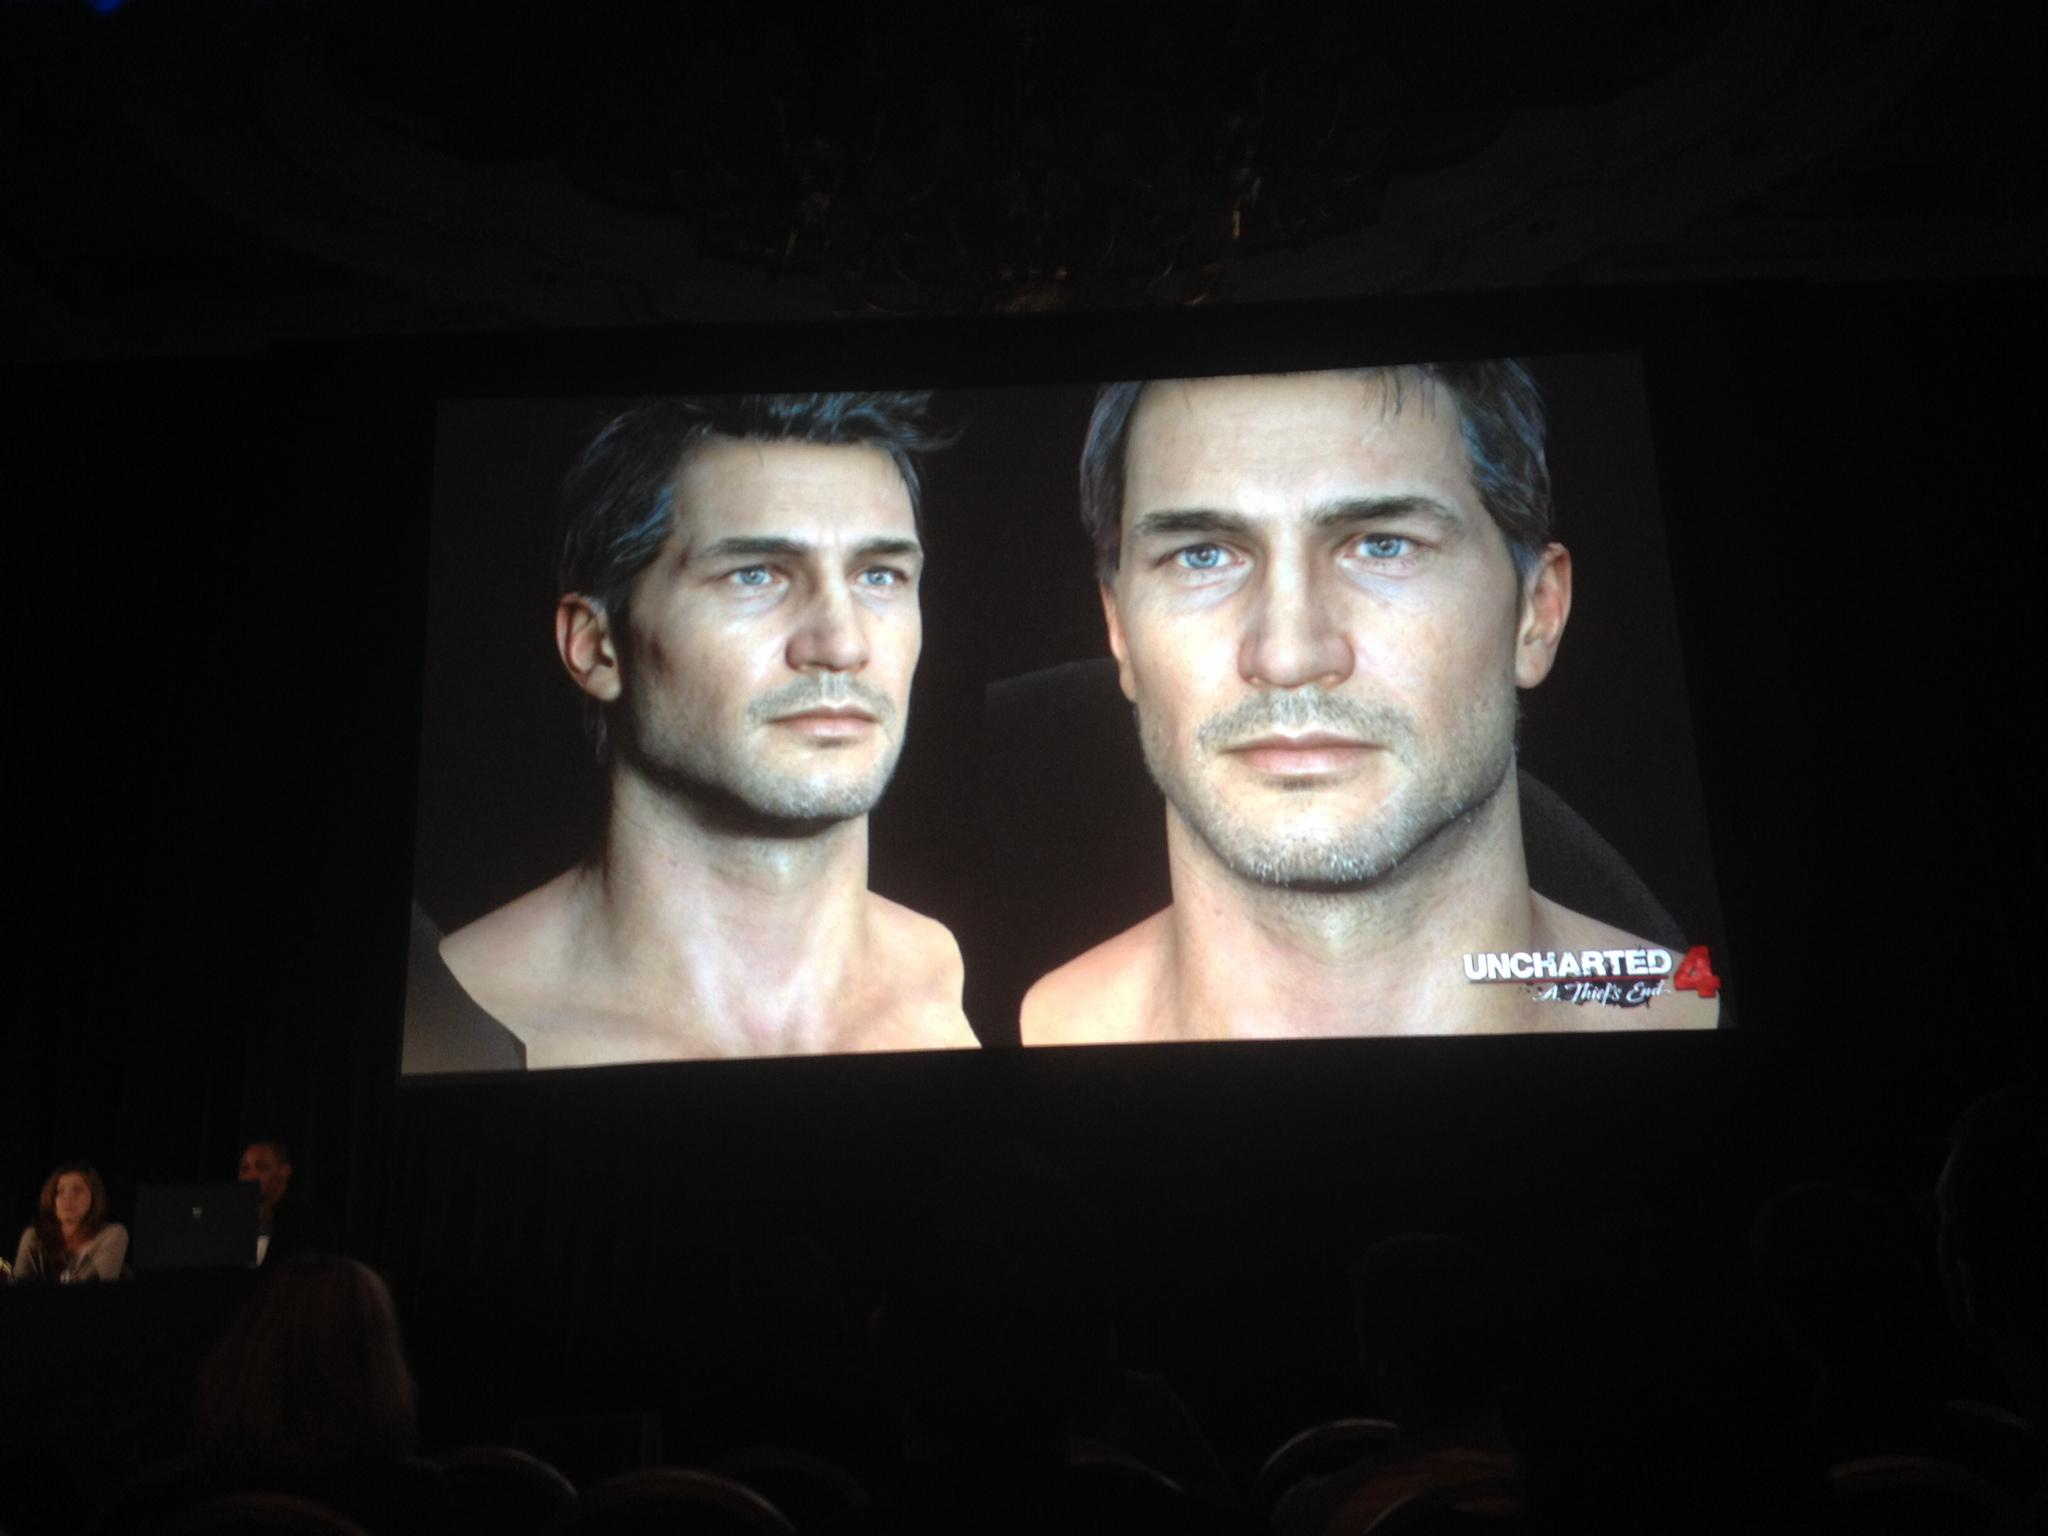 Uncharted 4 Vs Uncharted 3 Nathan Drake Looks Incredible